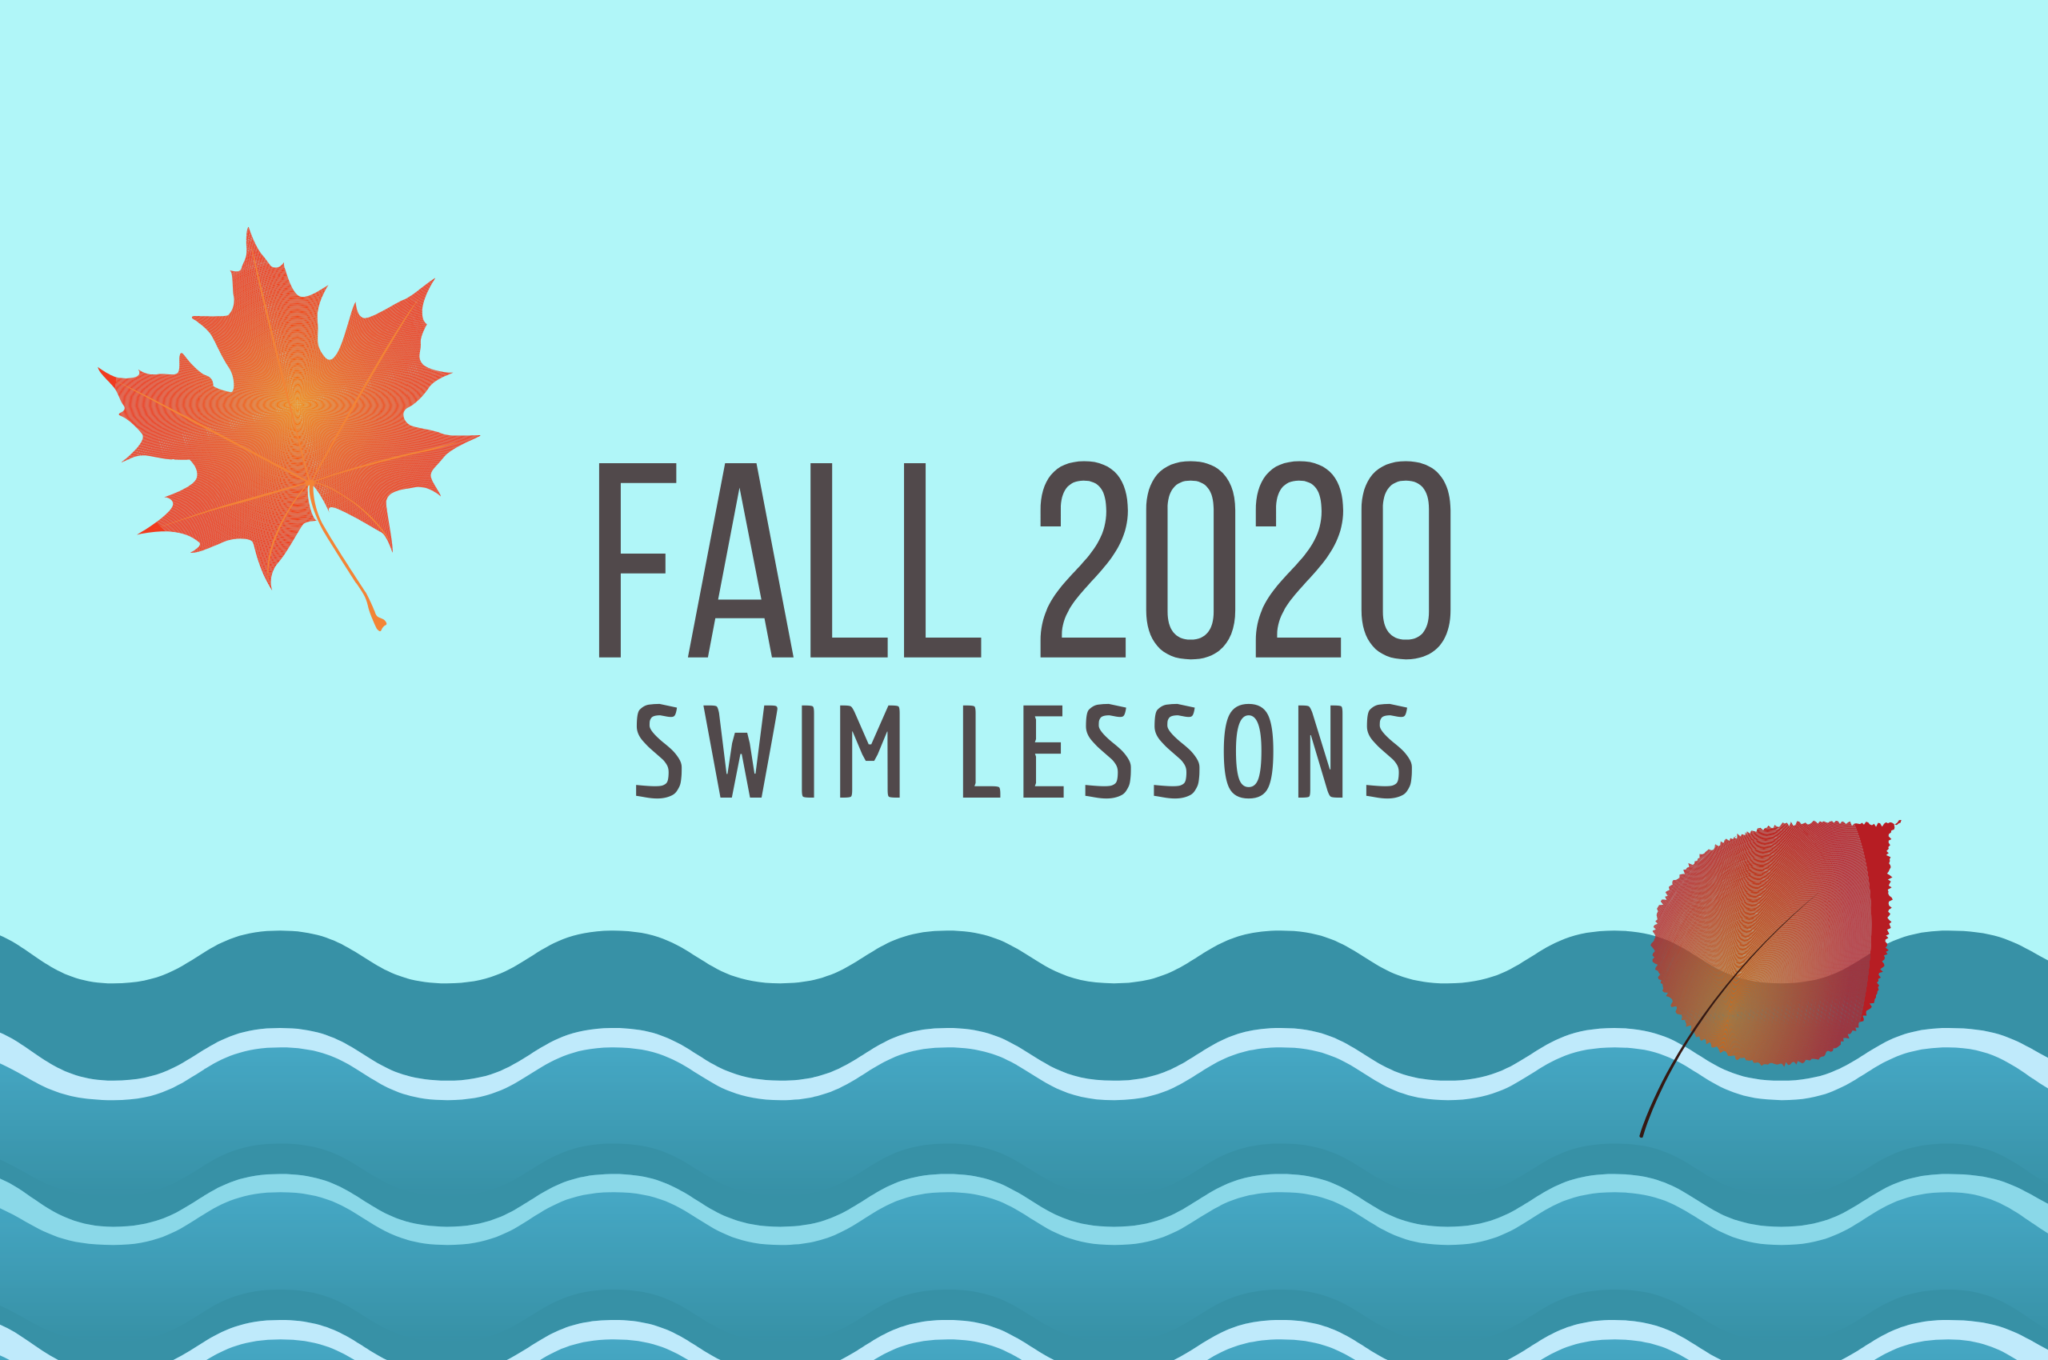 fall 2020 swim lessons